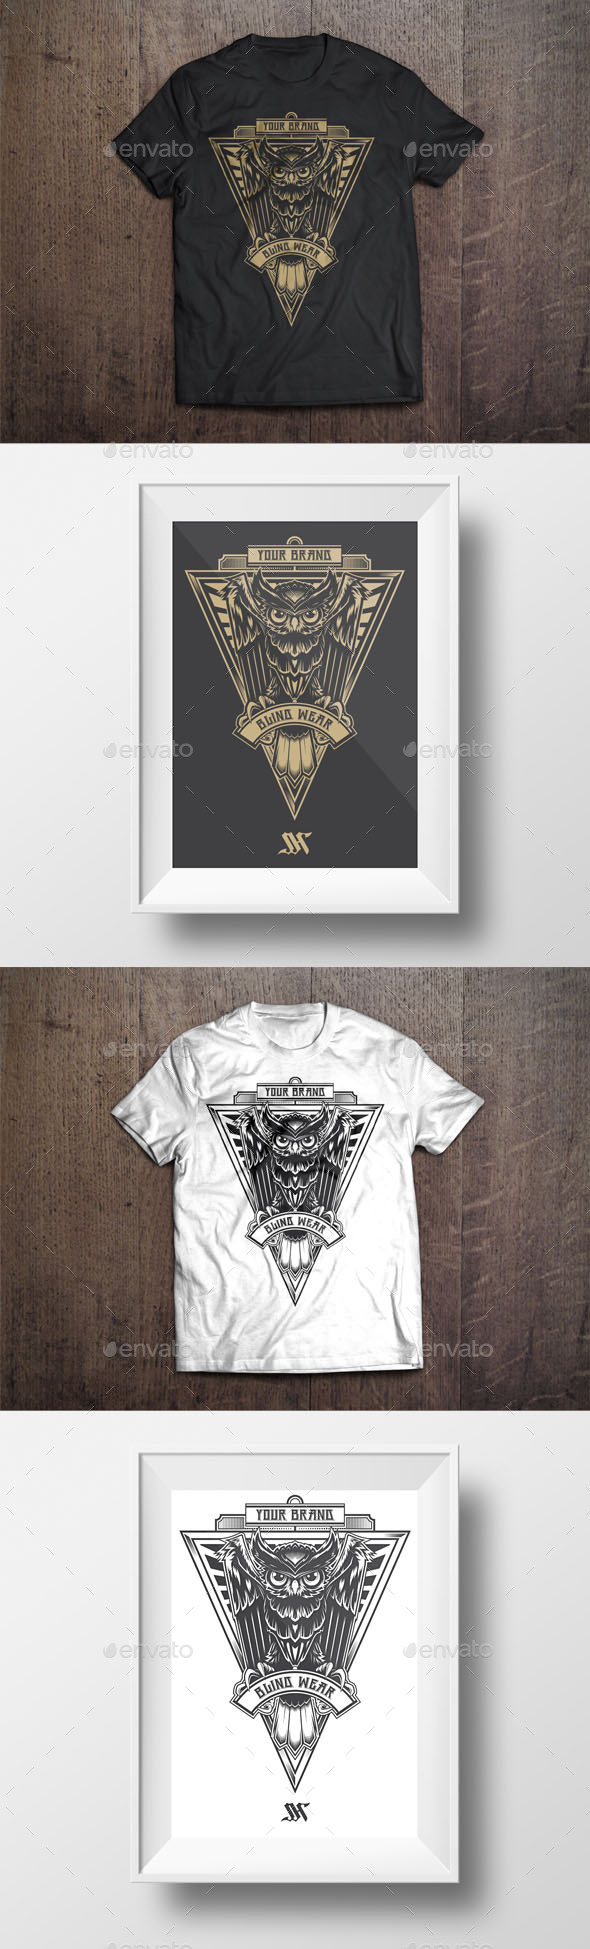 GraphicRiver T-Shirt Illustration Owl Theme 9696708